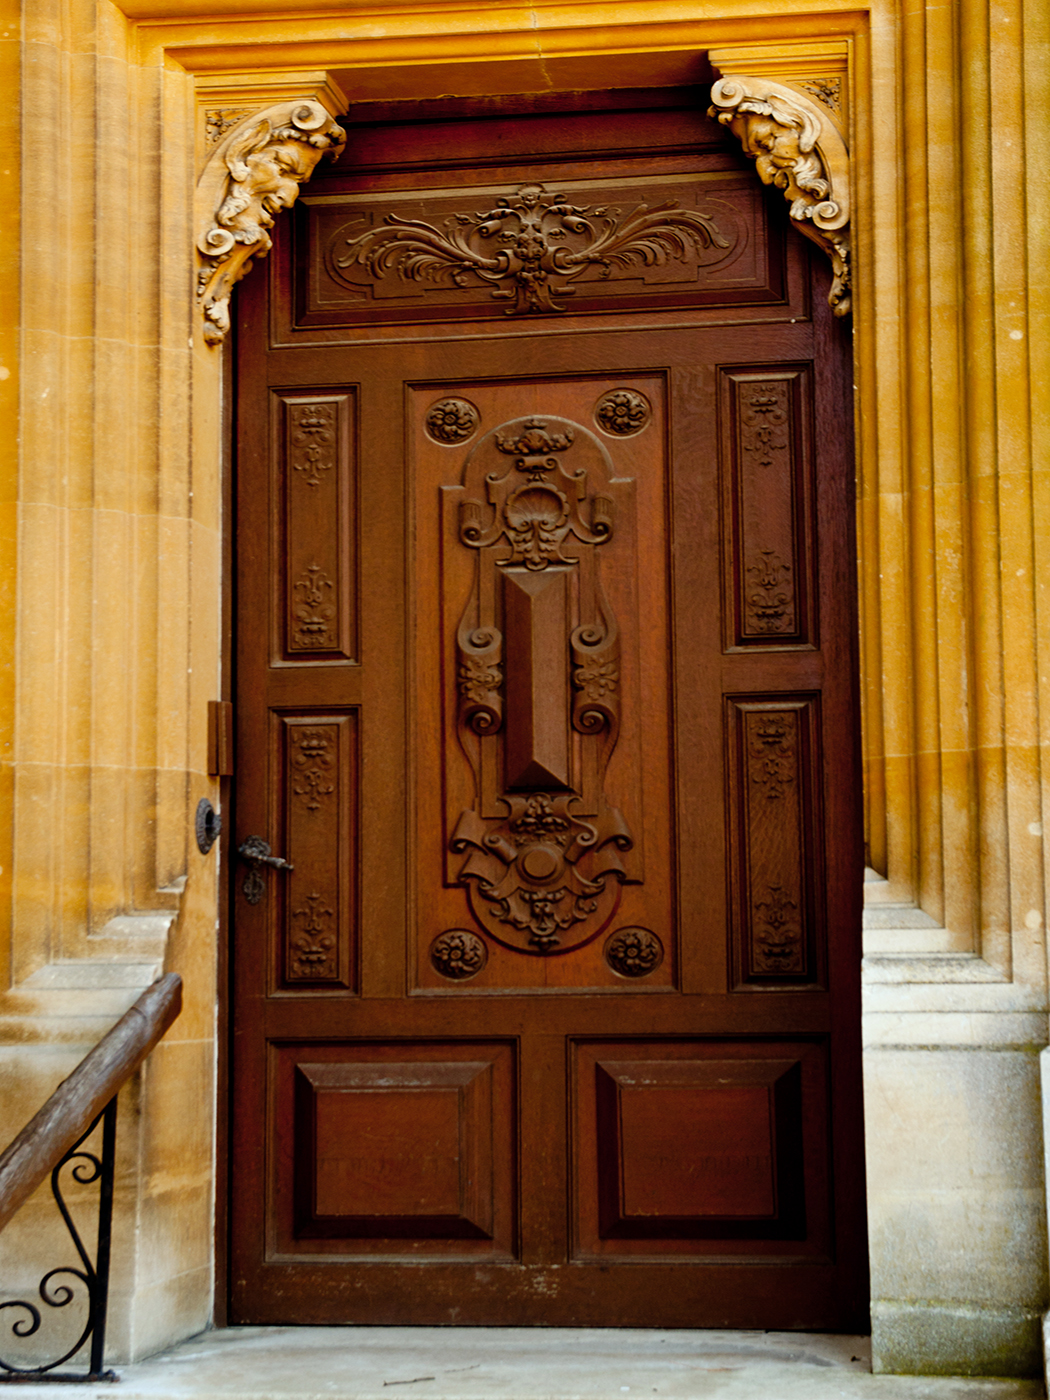 WADDESDON DOOR by Liam Mengham